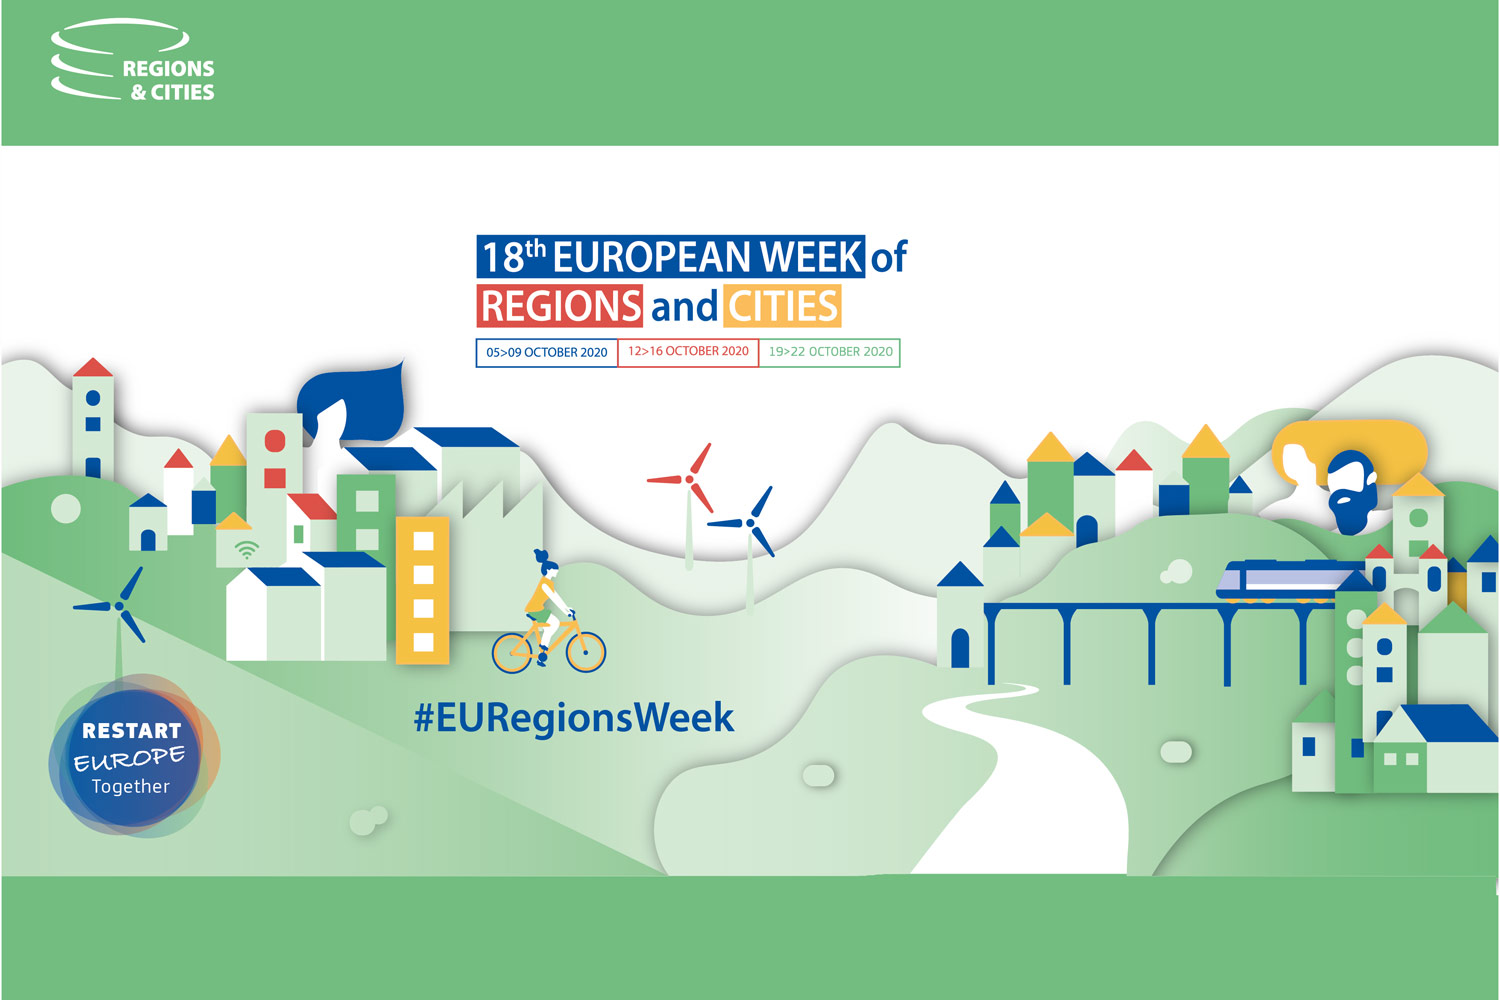 European Weel of Regions and Cities 2020